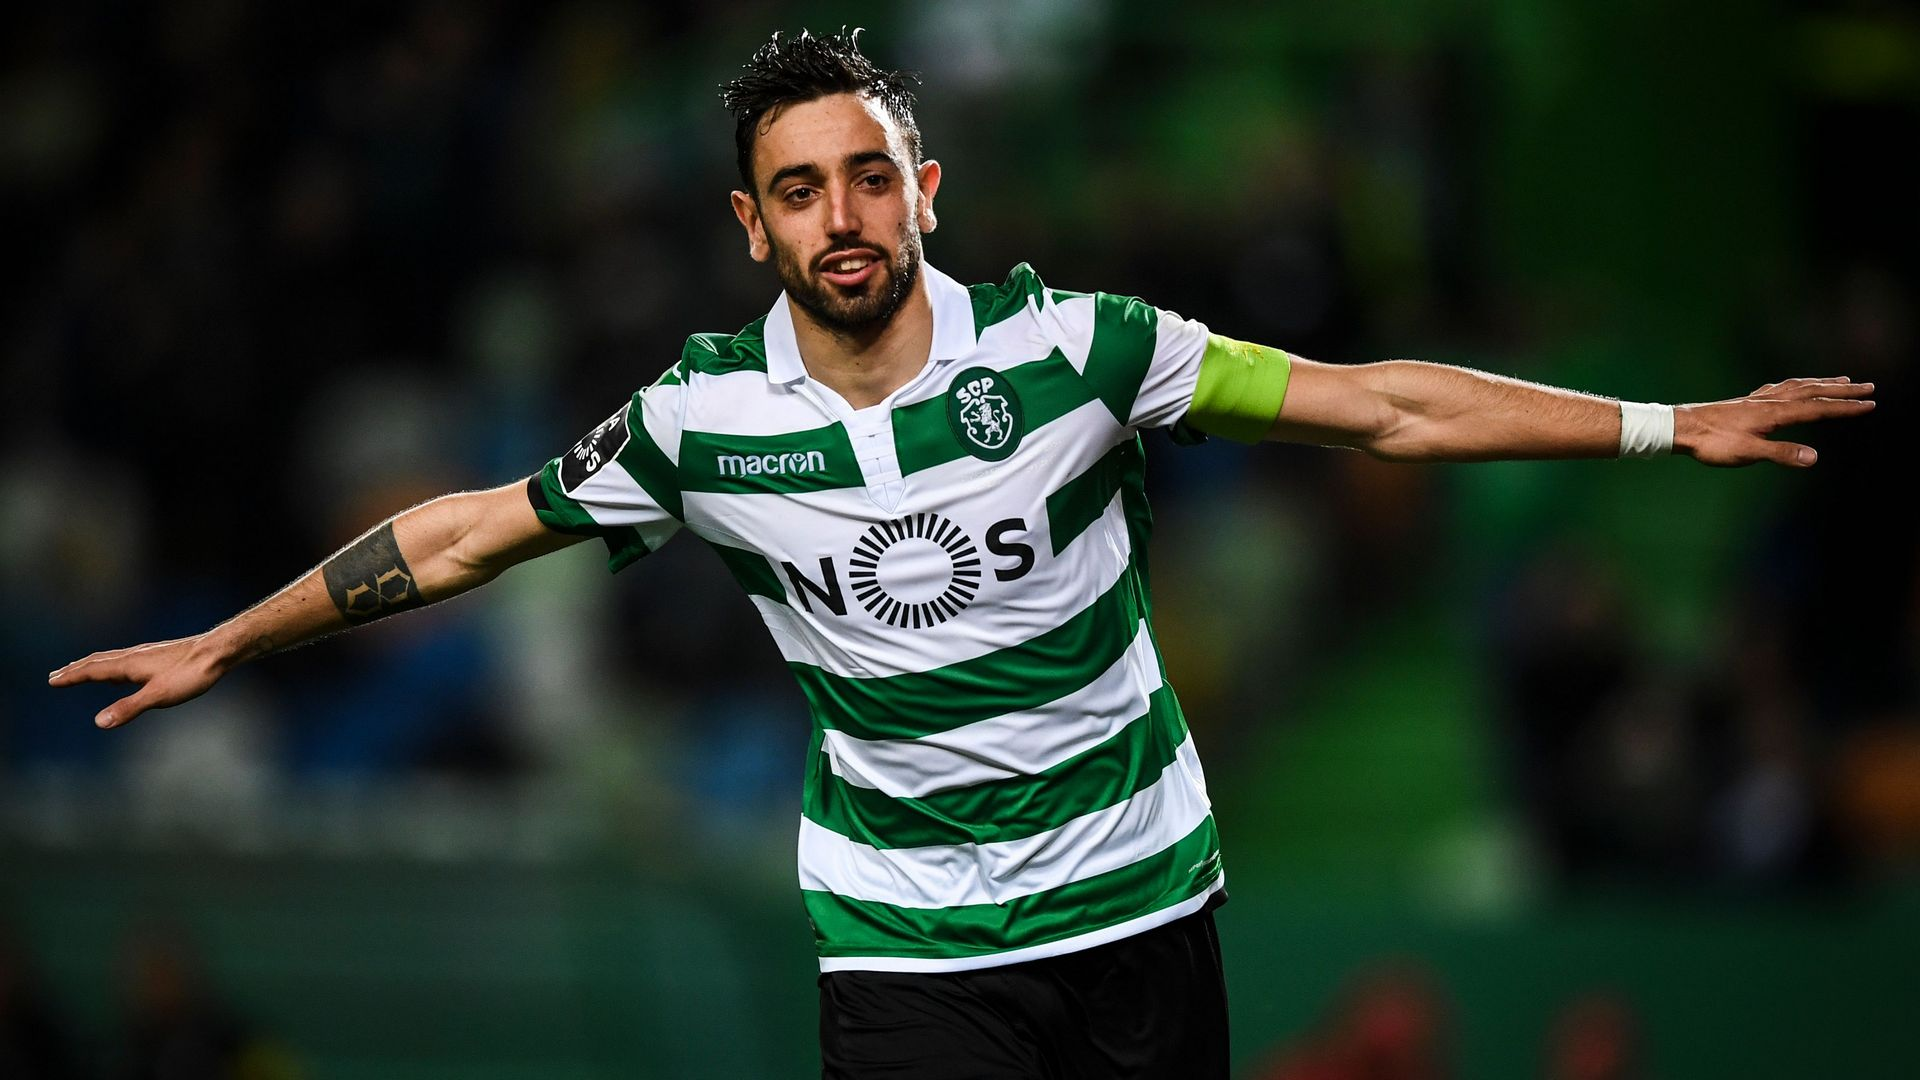 bruno fernandes - photo #1